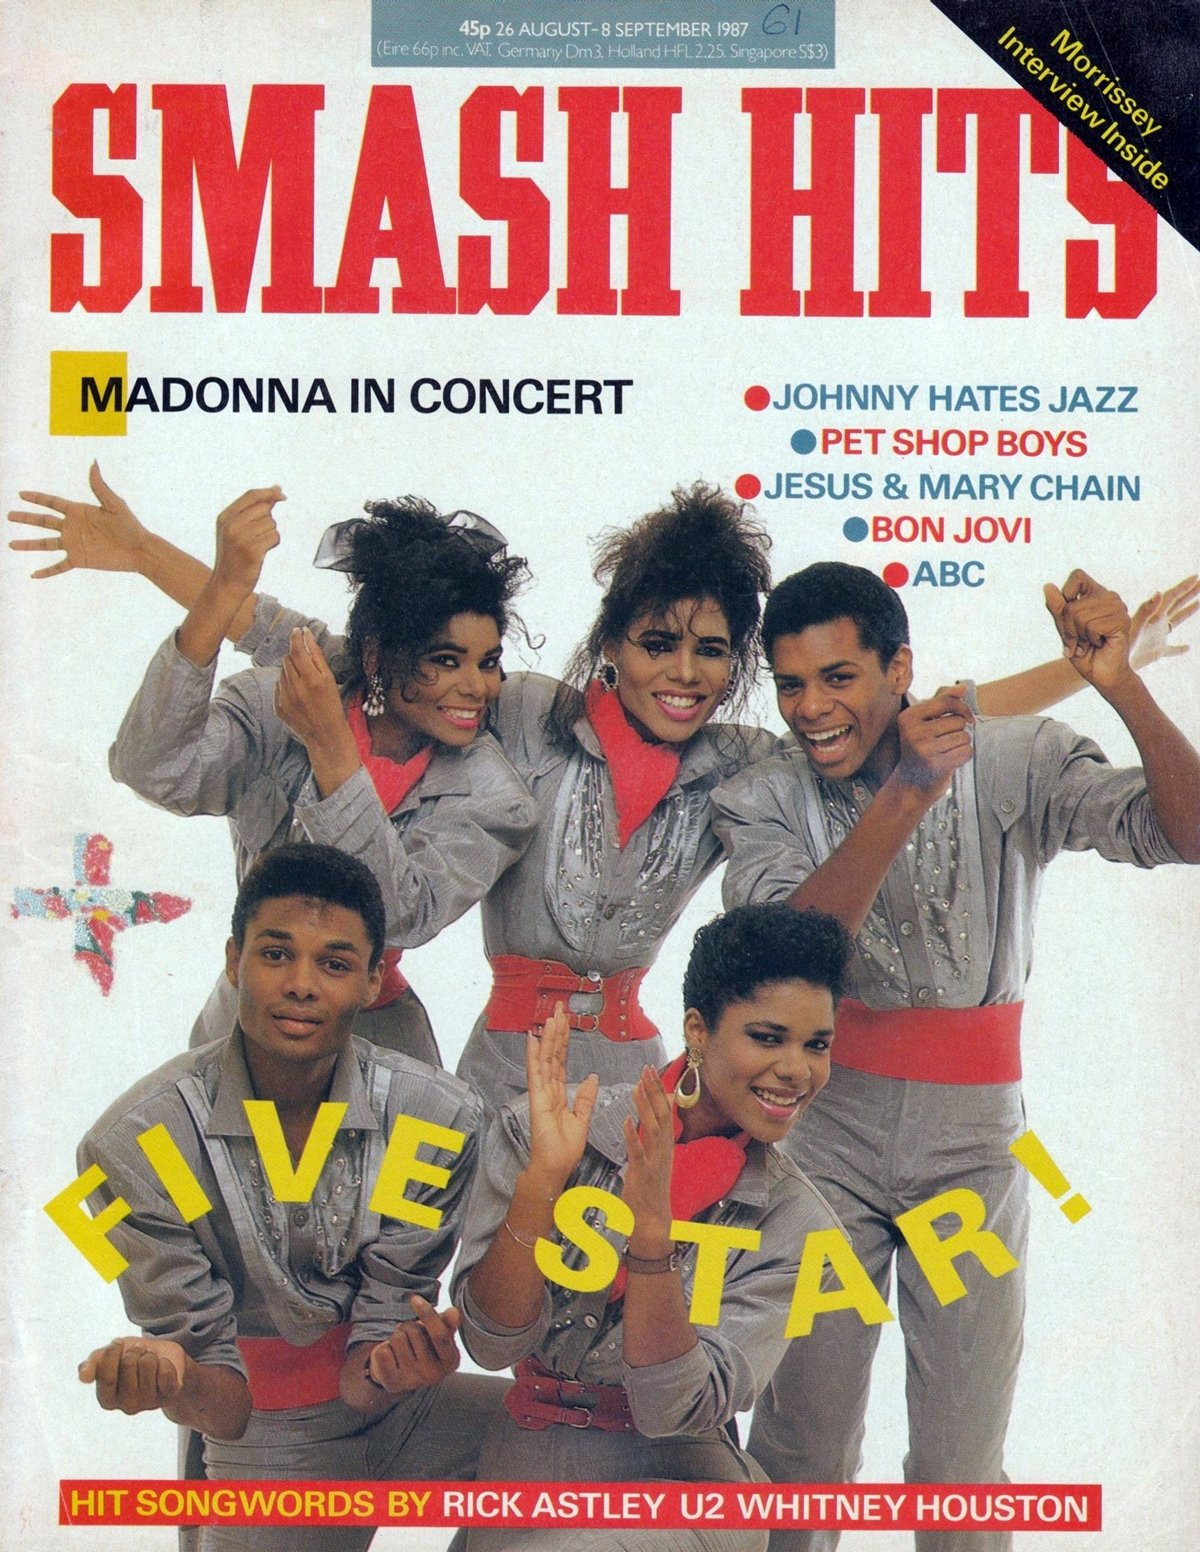 7 3 16 Smash Hits Covers That Will Take You Right Back To Your Youth